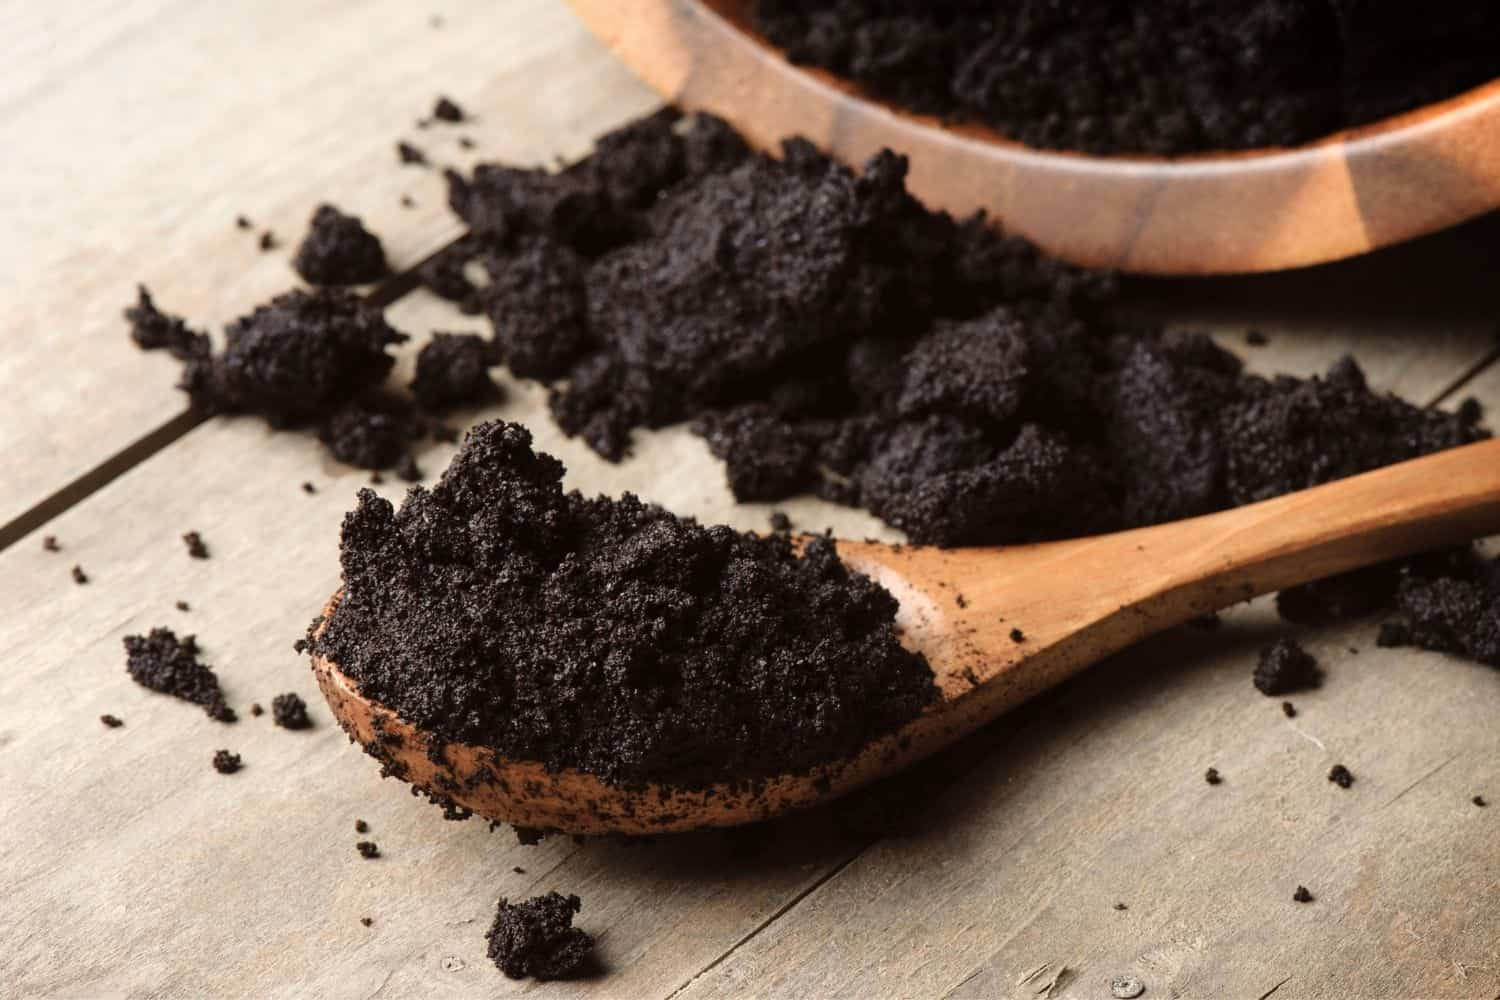 disposing coffee grounds.